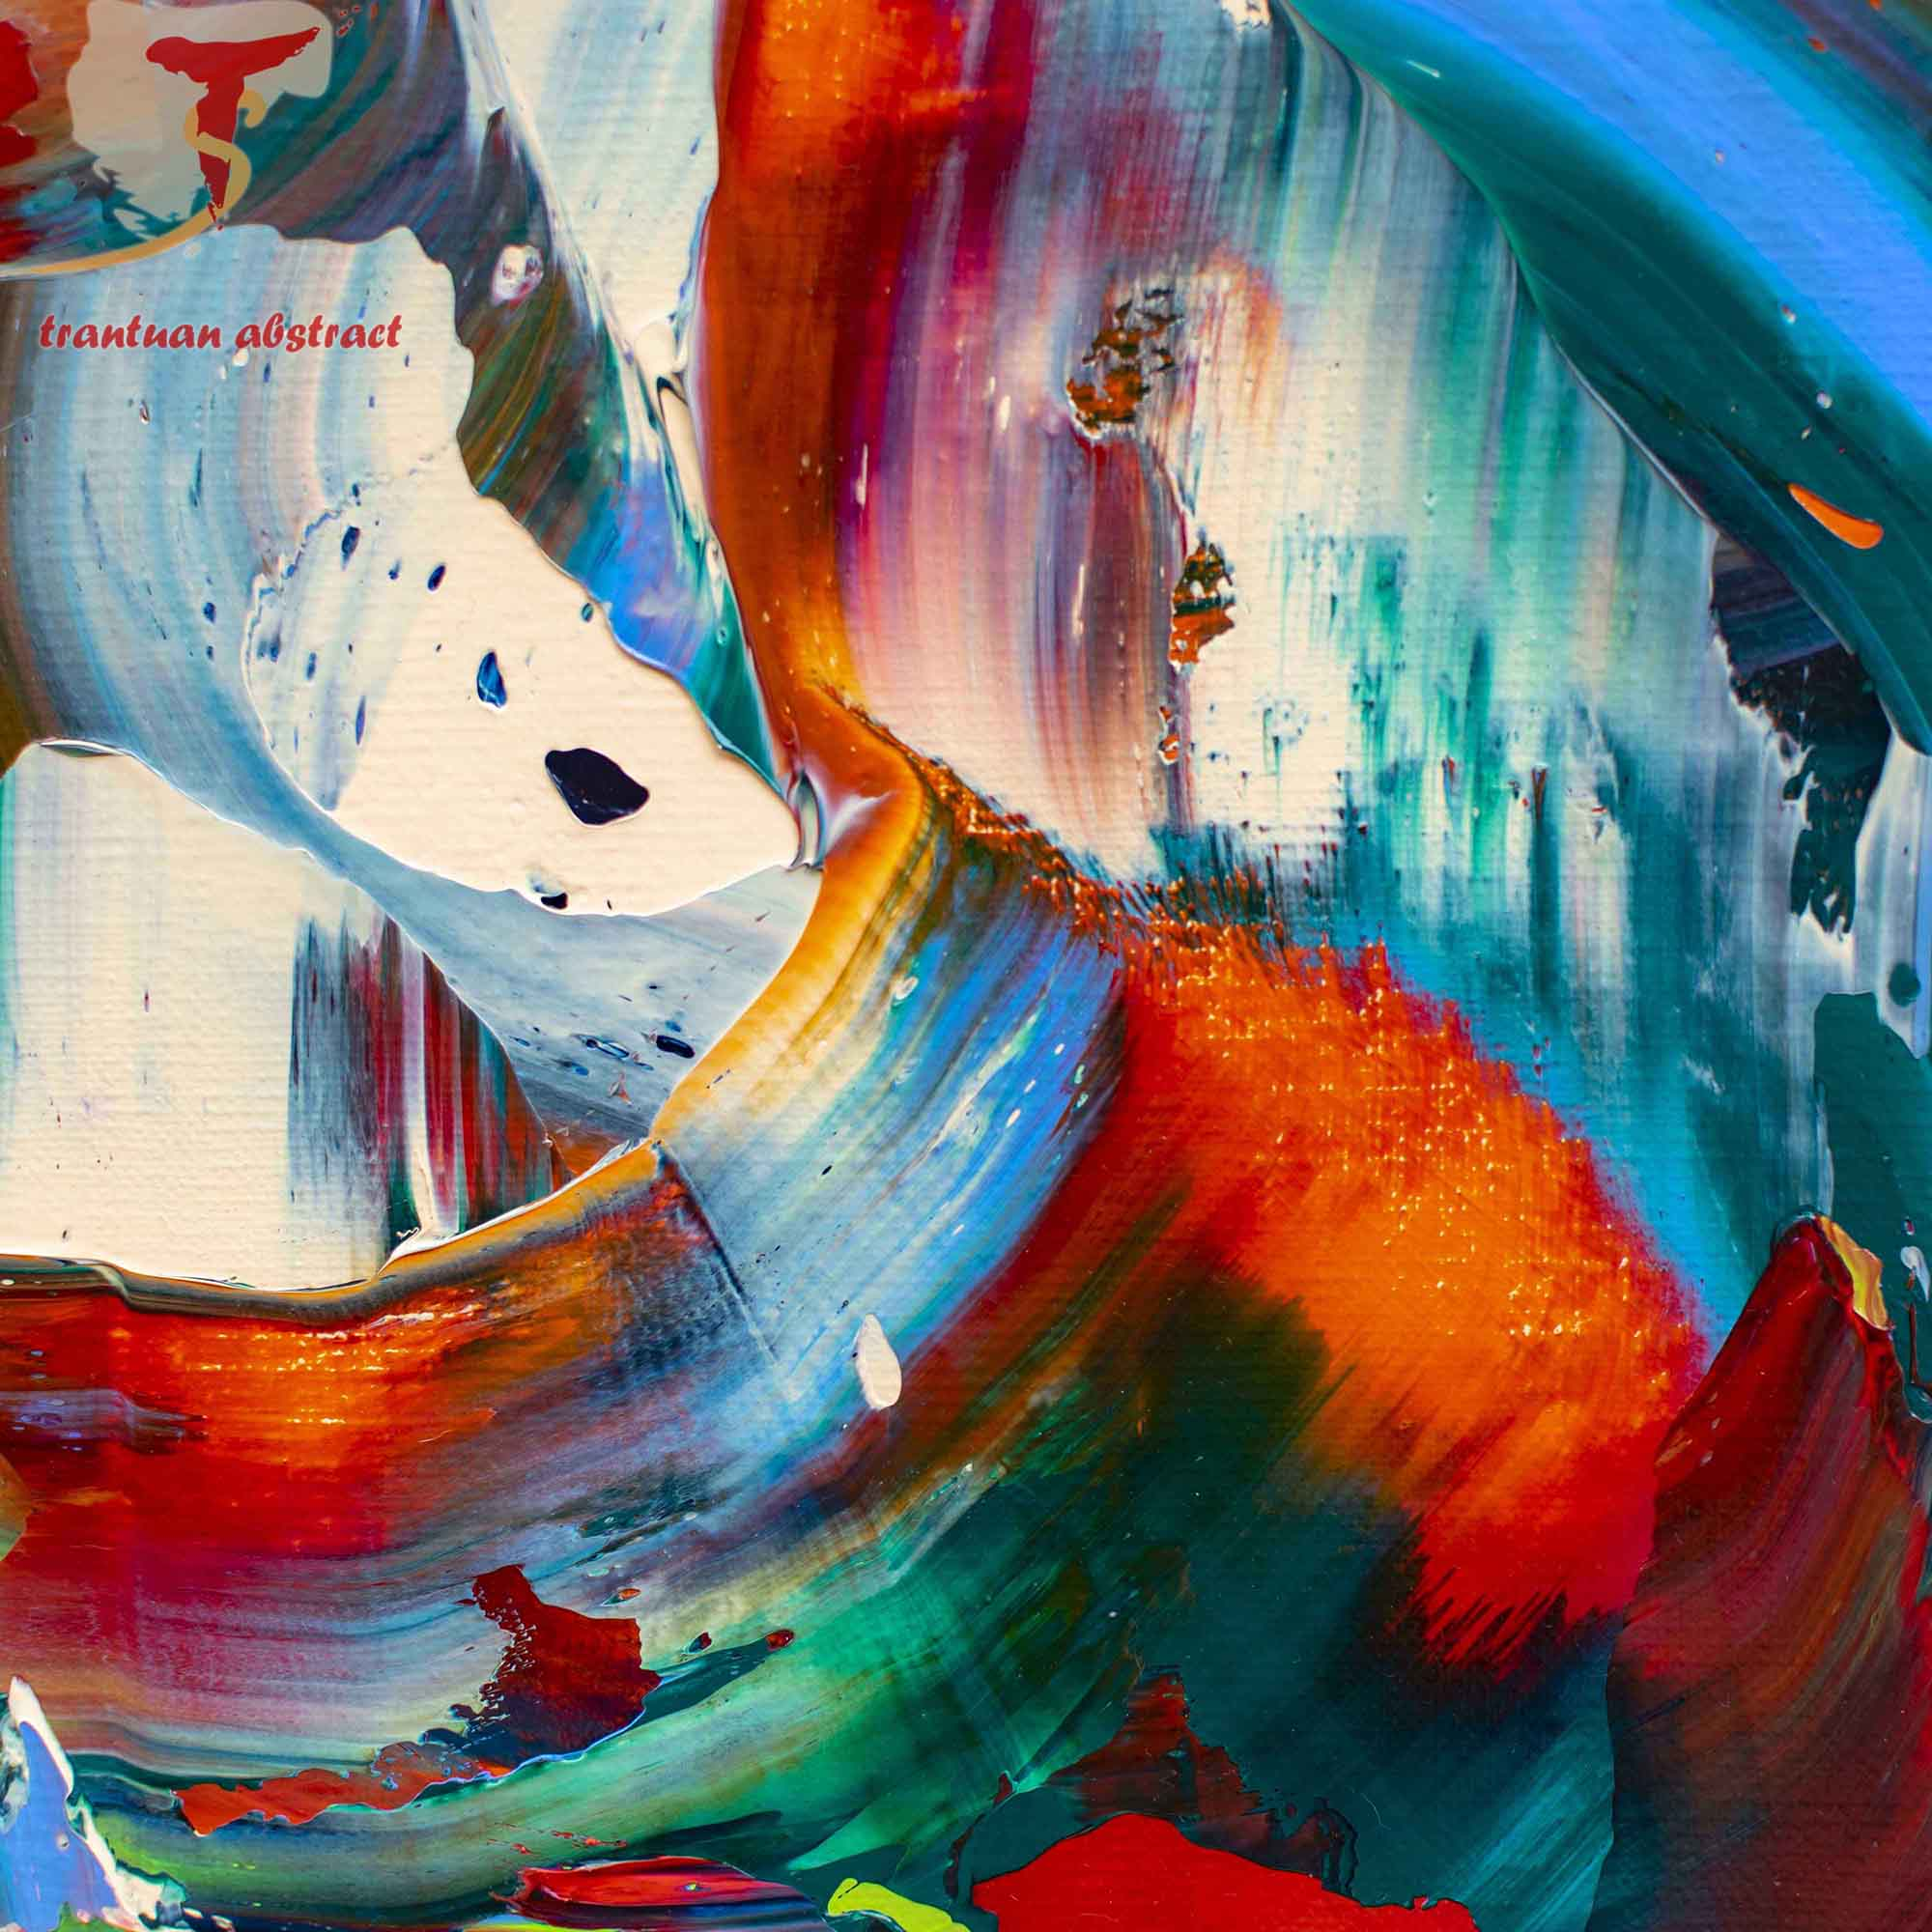 Tran Tuan Abstract Color of Nostalgia 2021 100 x 100 x 3 cm Acrylic on Canvas Painting Detail s (3)